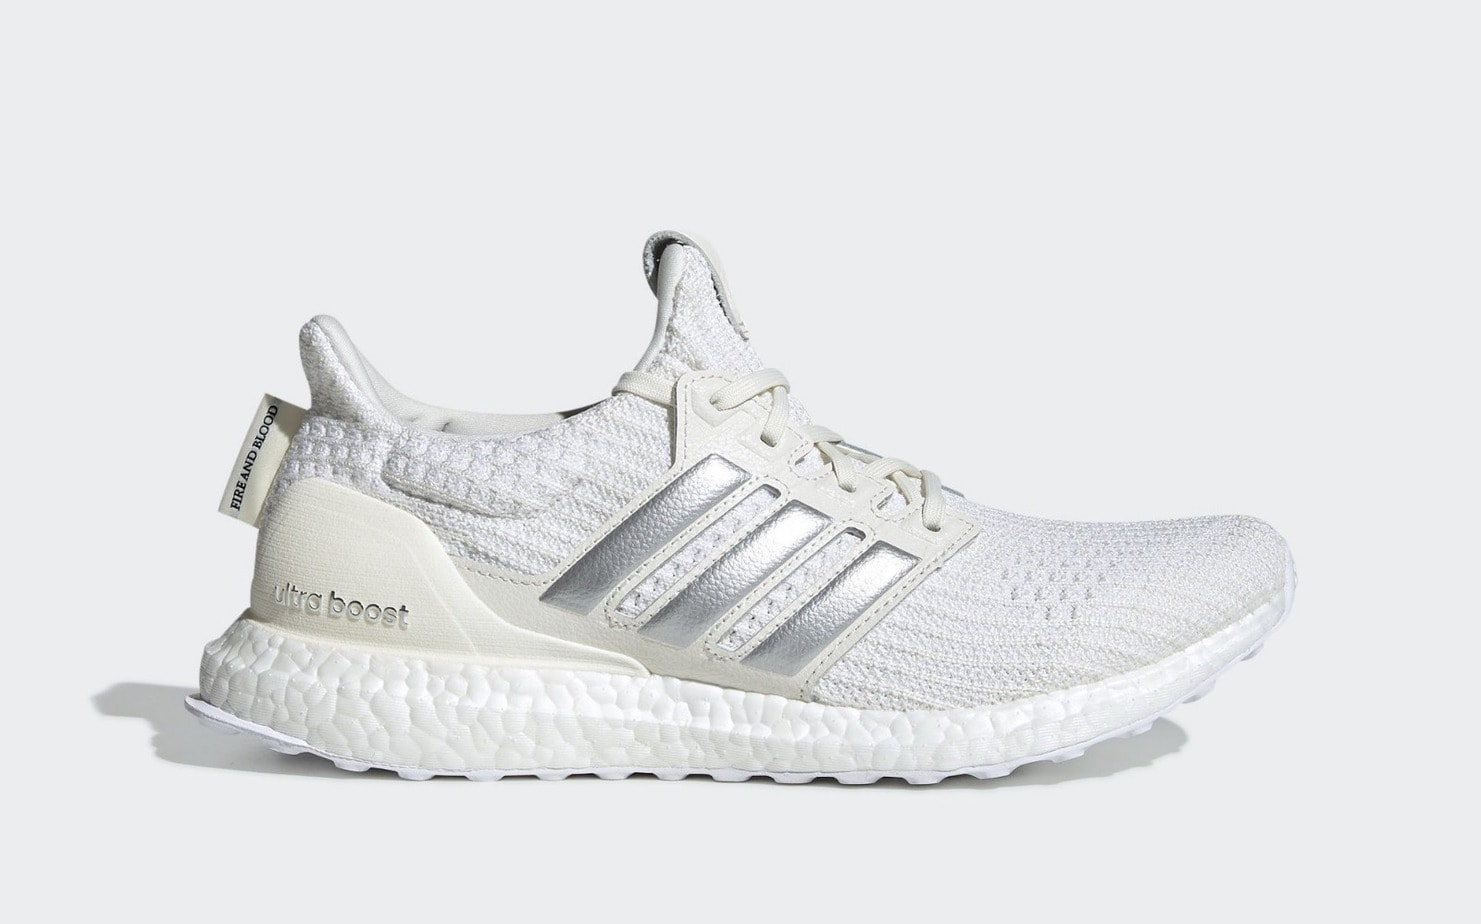 6ccb8dc3a The Game of Thrones x adidas Ultra Boost collection is almost here. After  over a year of waiting